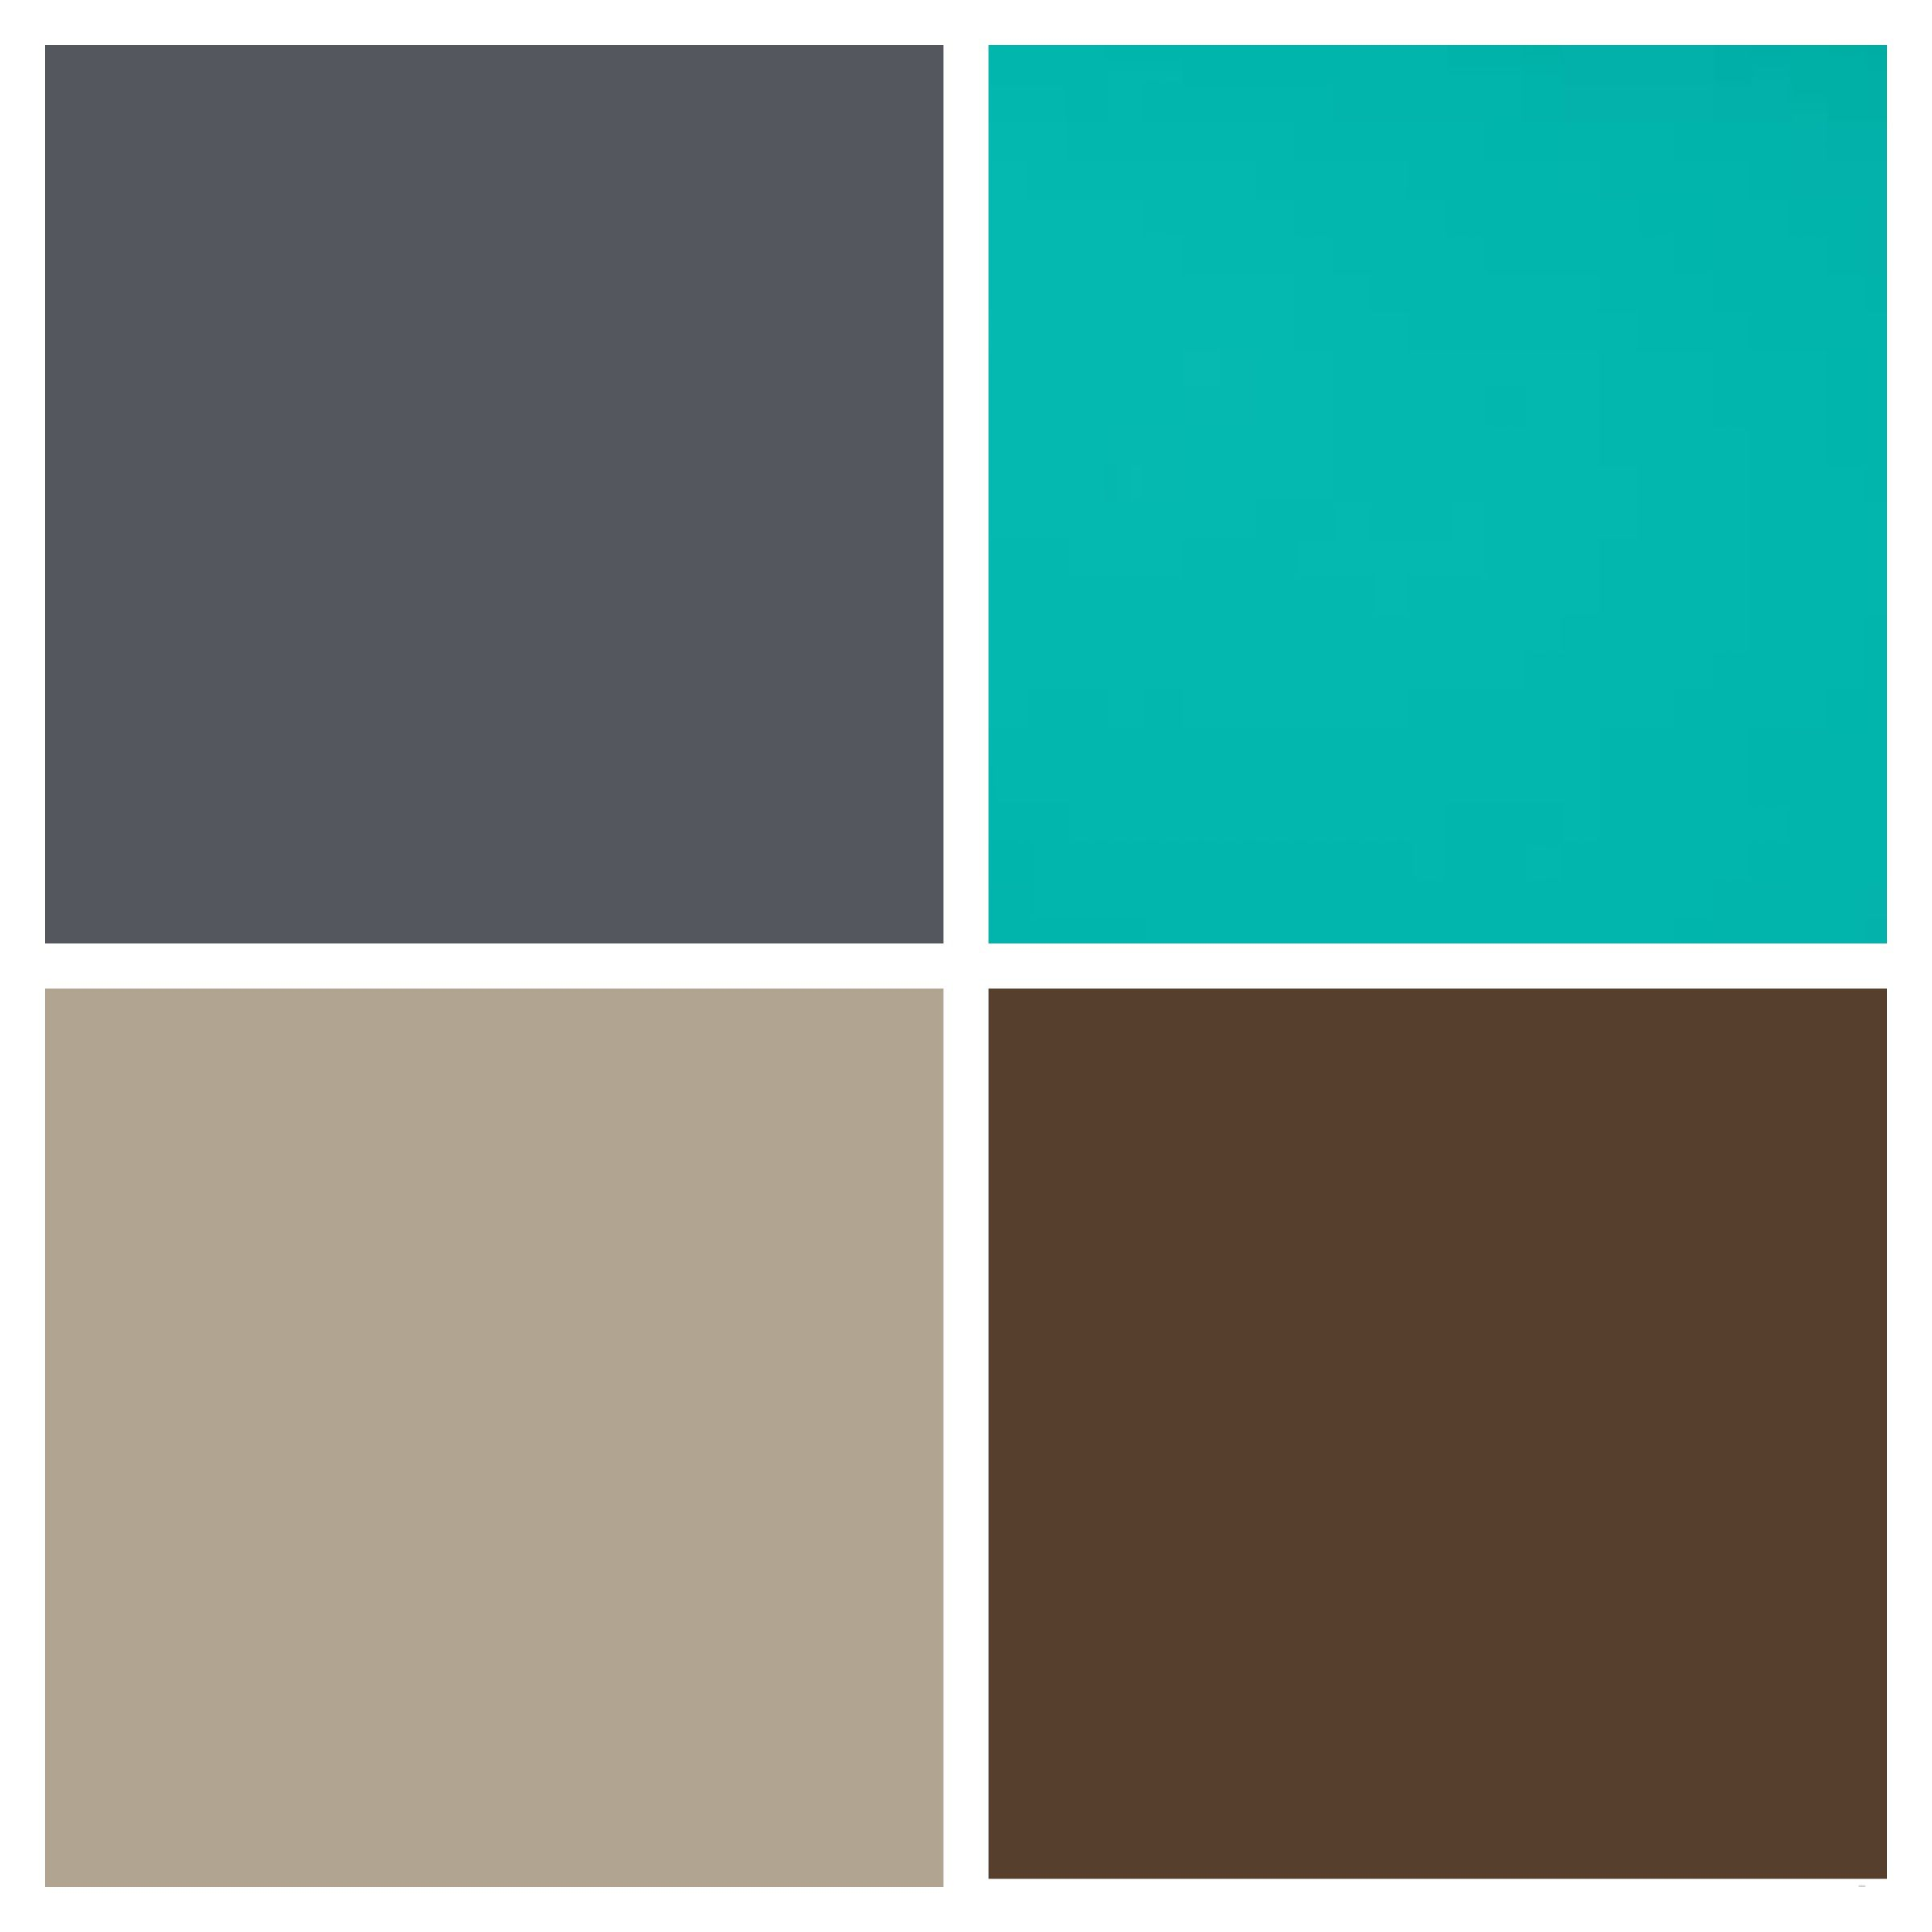 Bedroom color palette - slate gray / storm grey, turquoise ...